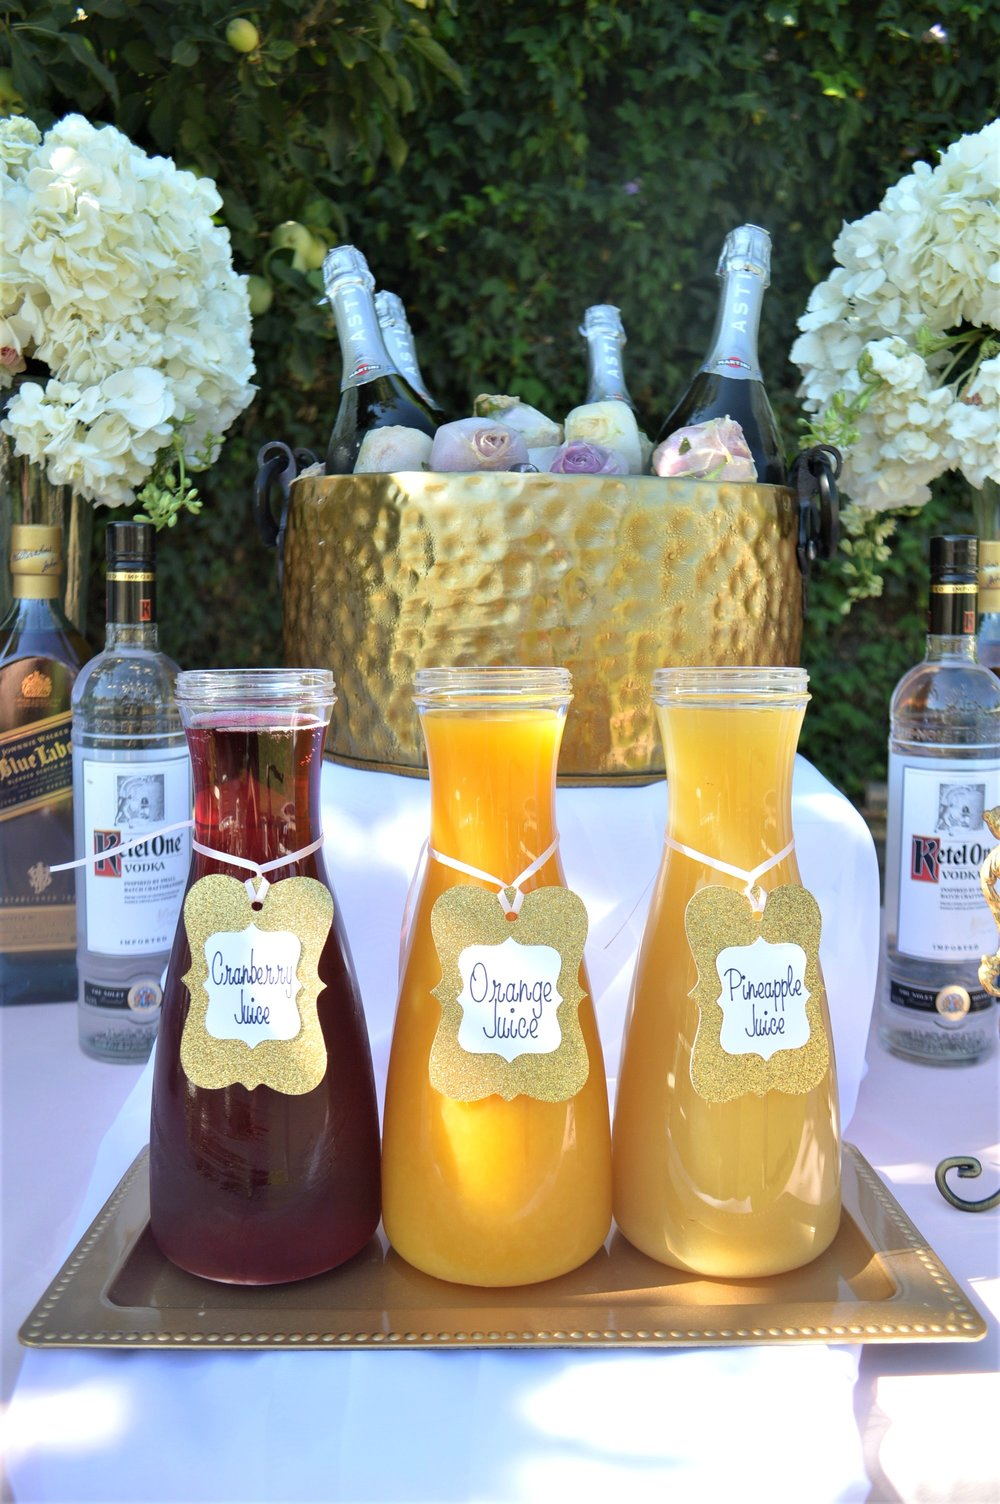 Wedding-Drink Mixers-Wedding Drink-Garden Wedding-wedding ideas-Backyard wedding-wedding drink table-Wedding drinks-Backyard wedding-www.SugarPartiesLA.com.jpg